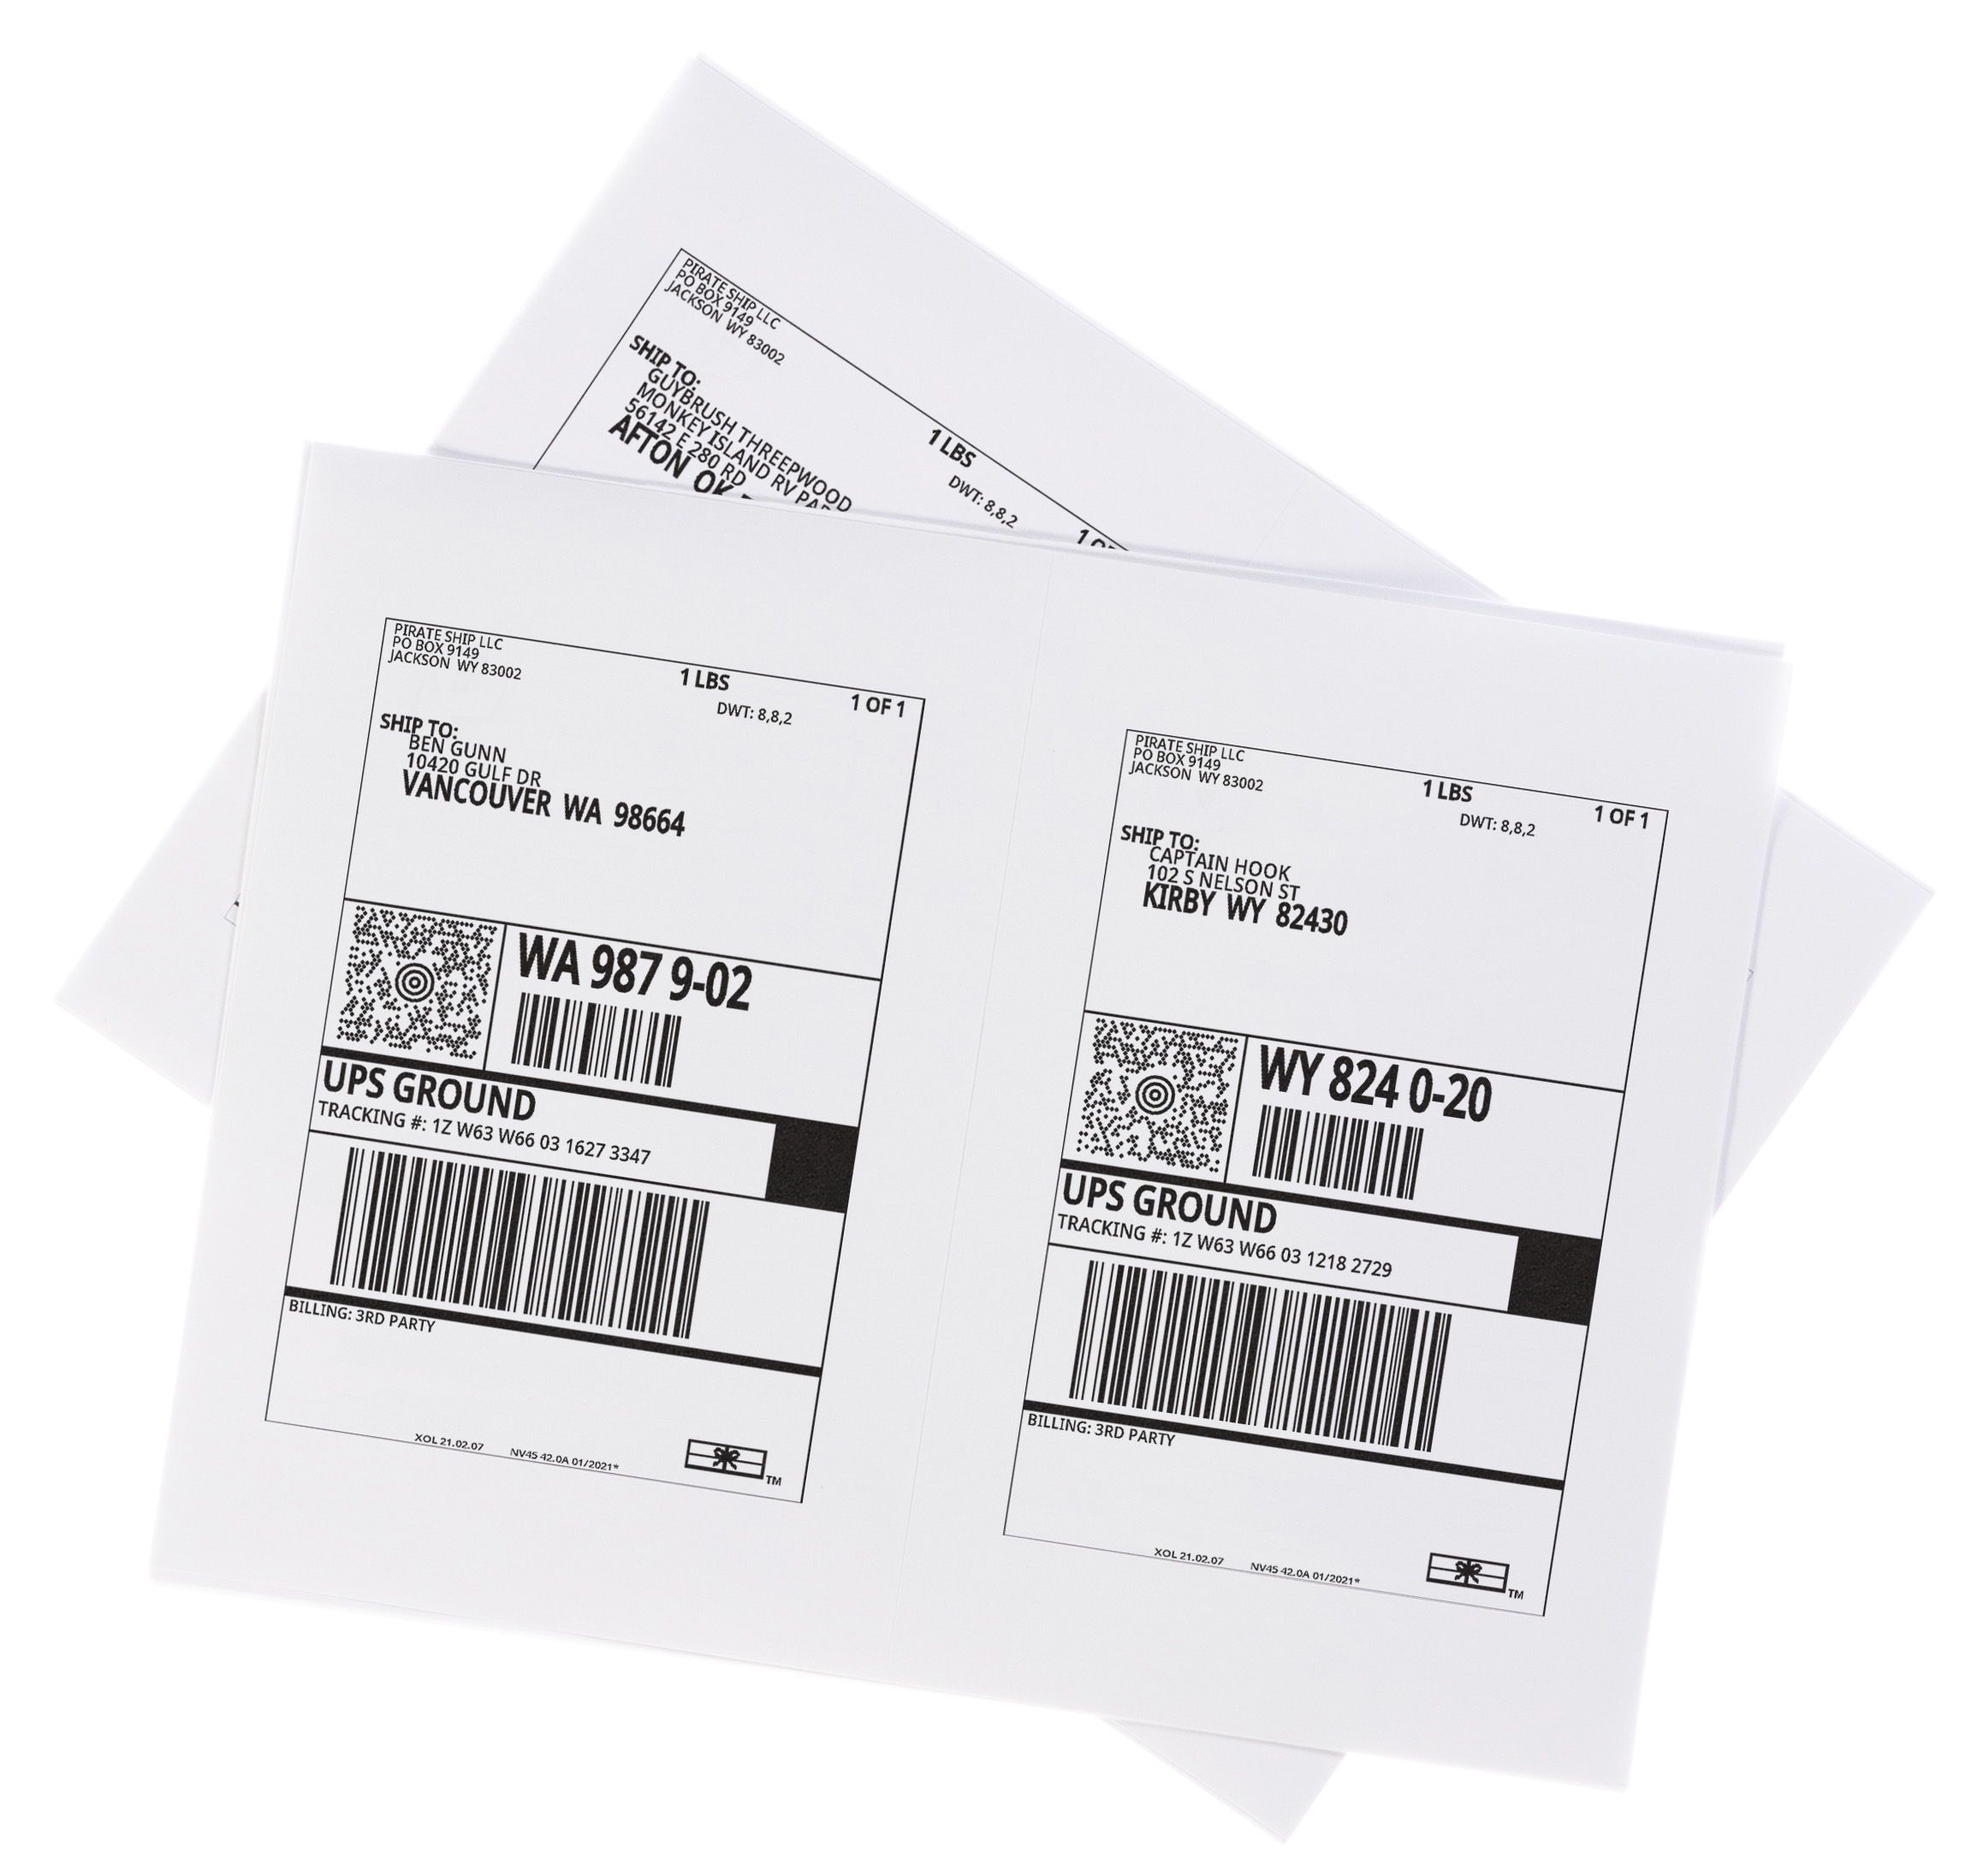 UPS Ground shipping labels